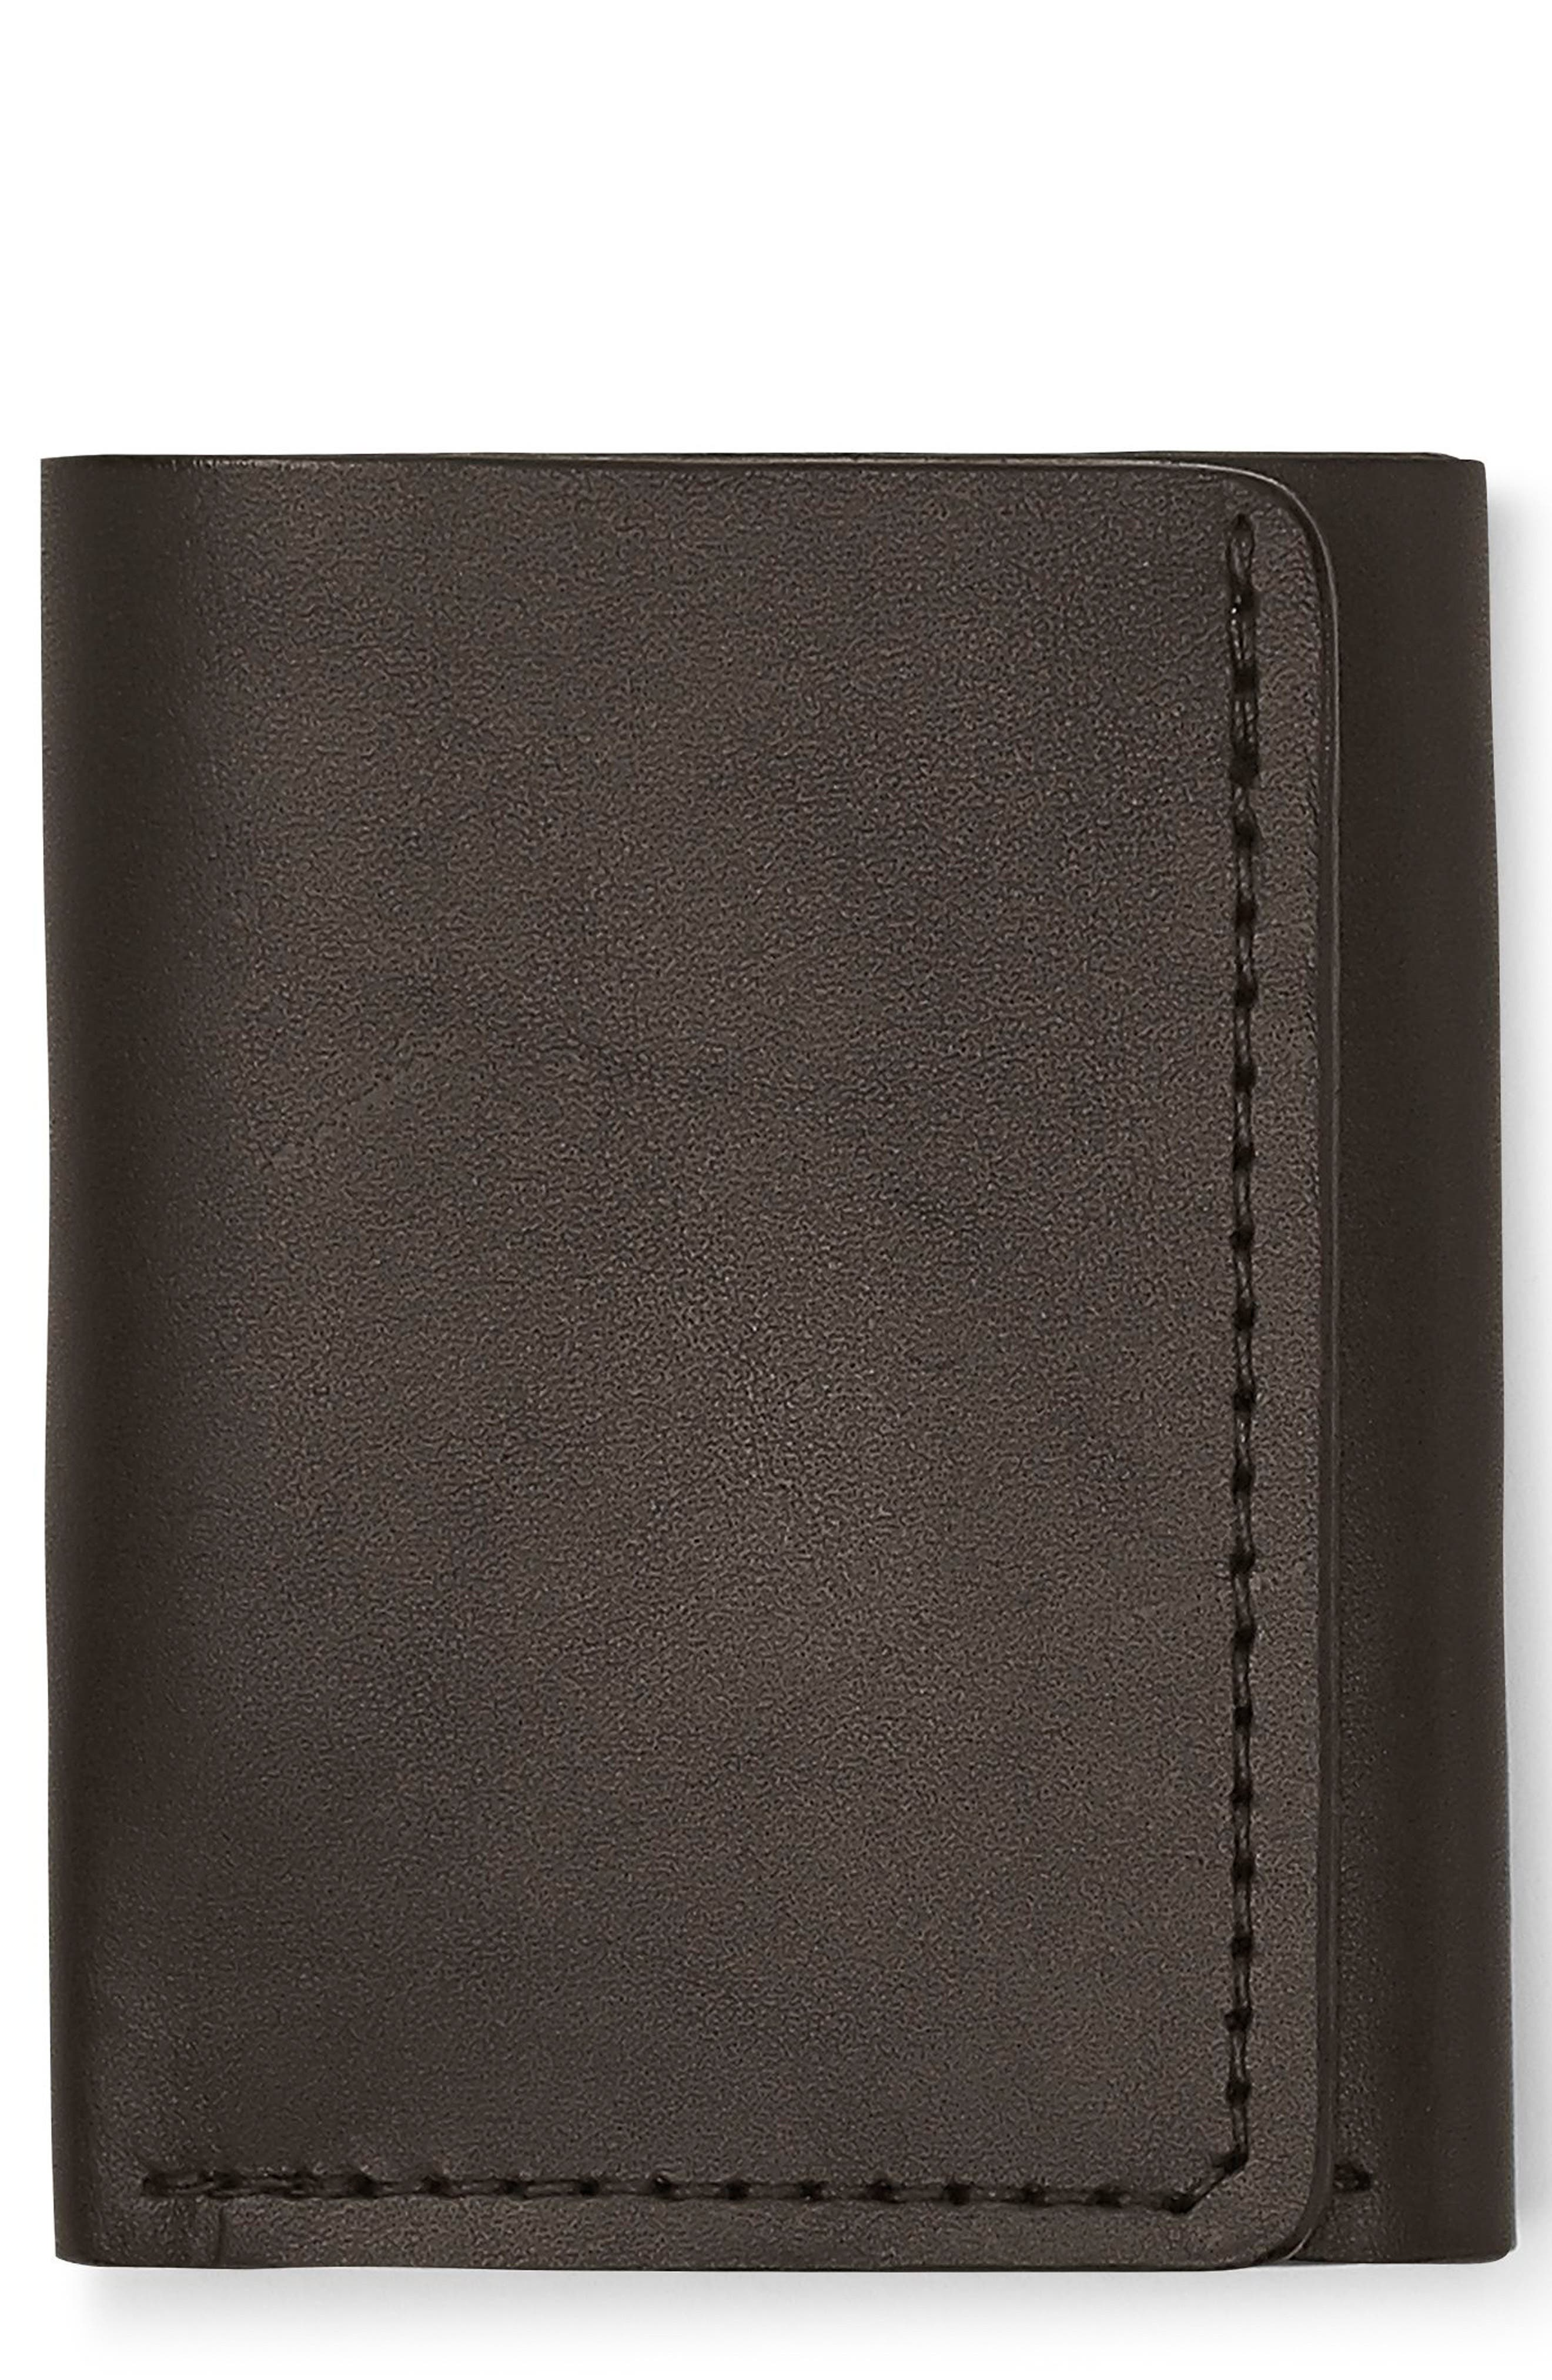 Leather Trifold Leather Wallet,                             Main thumbnail 3, color,